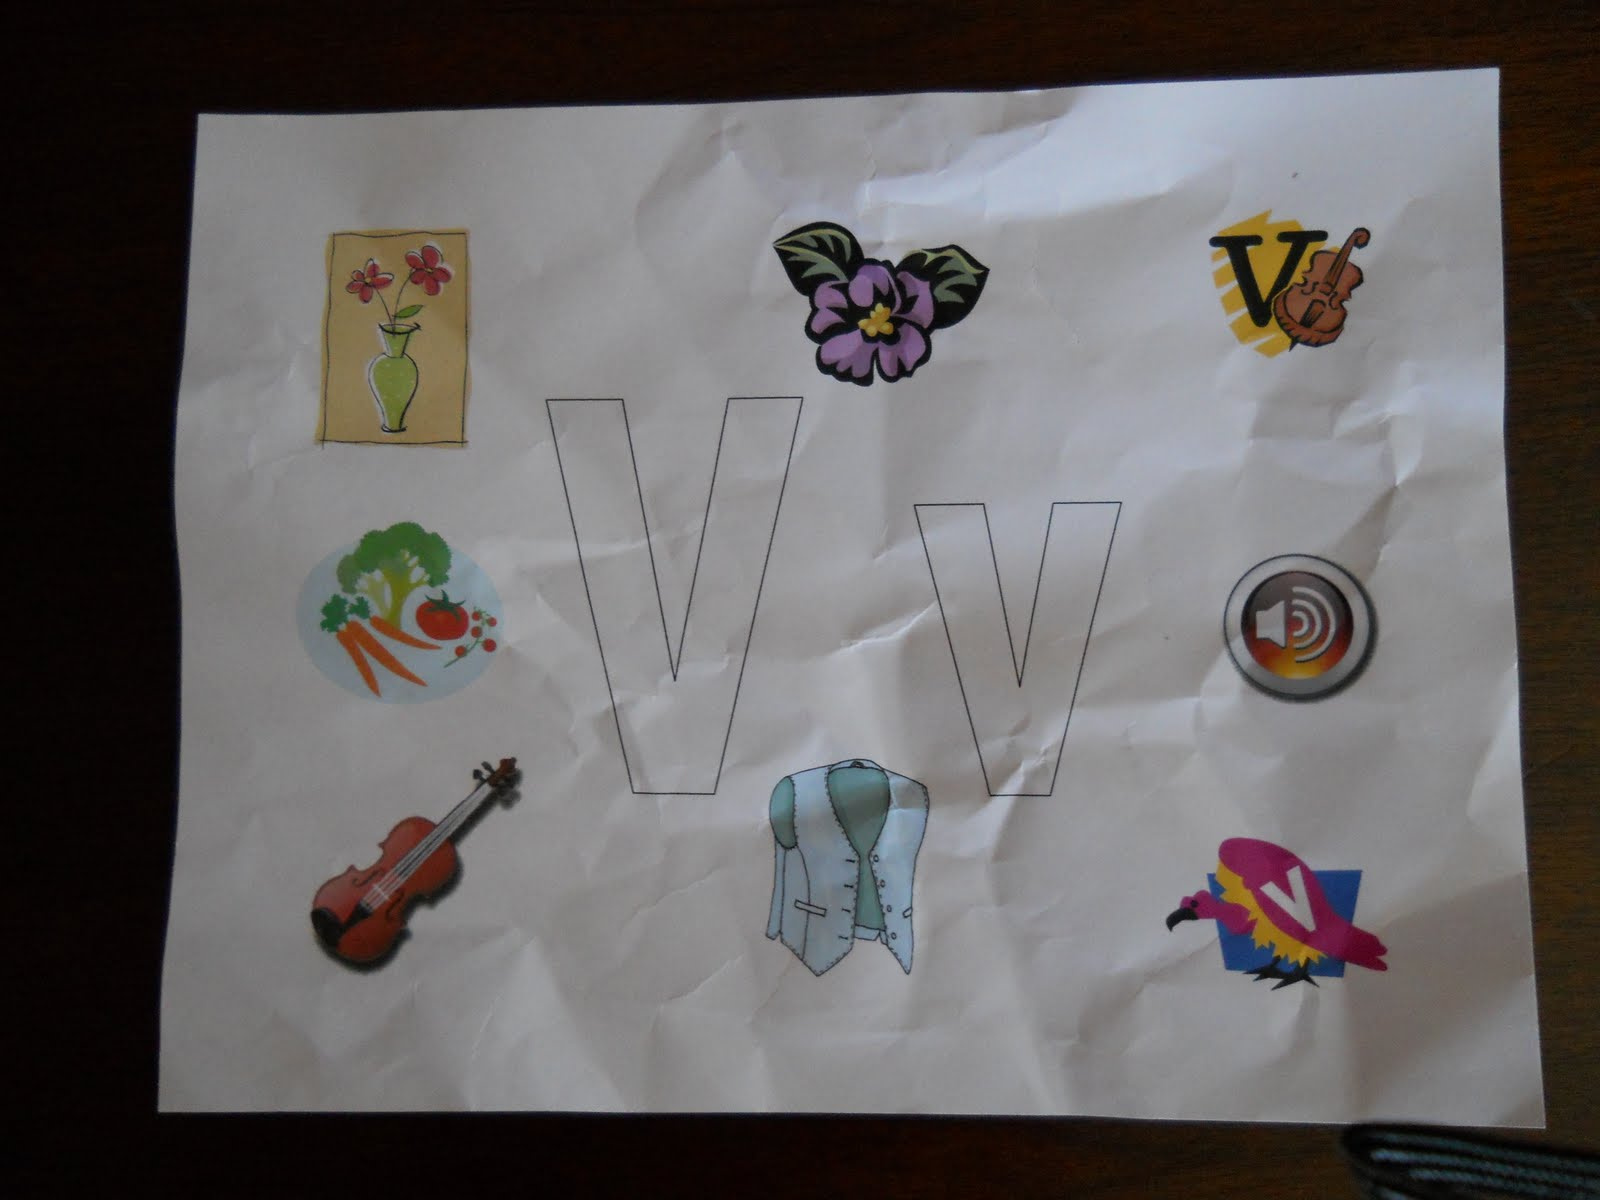 Objects Start with Letter I http://adayfamacademy.blogspot.com/2010/05/tot-school-letter-v.html